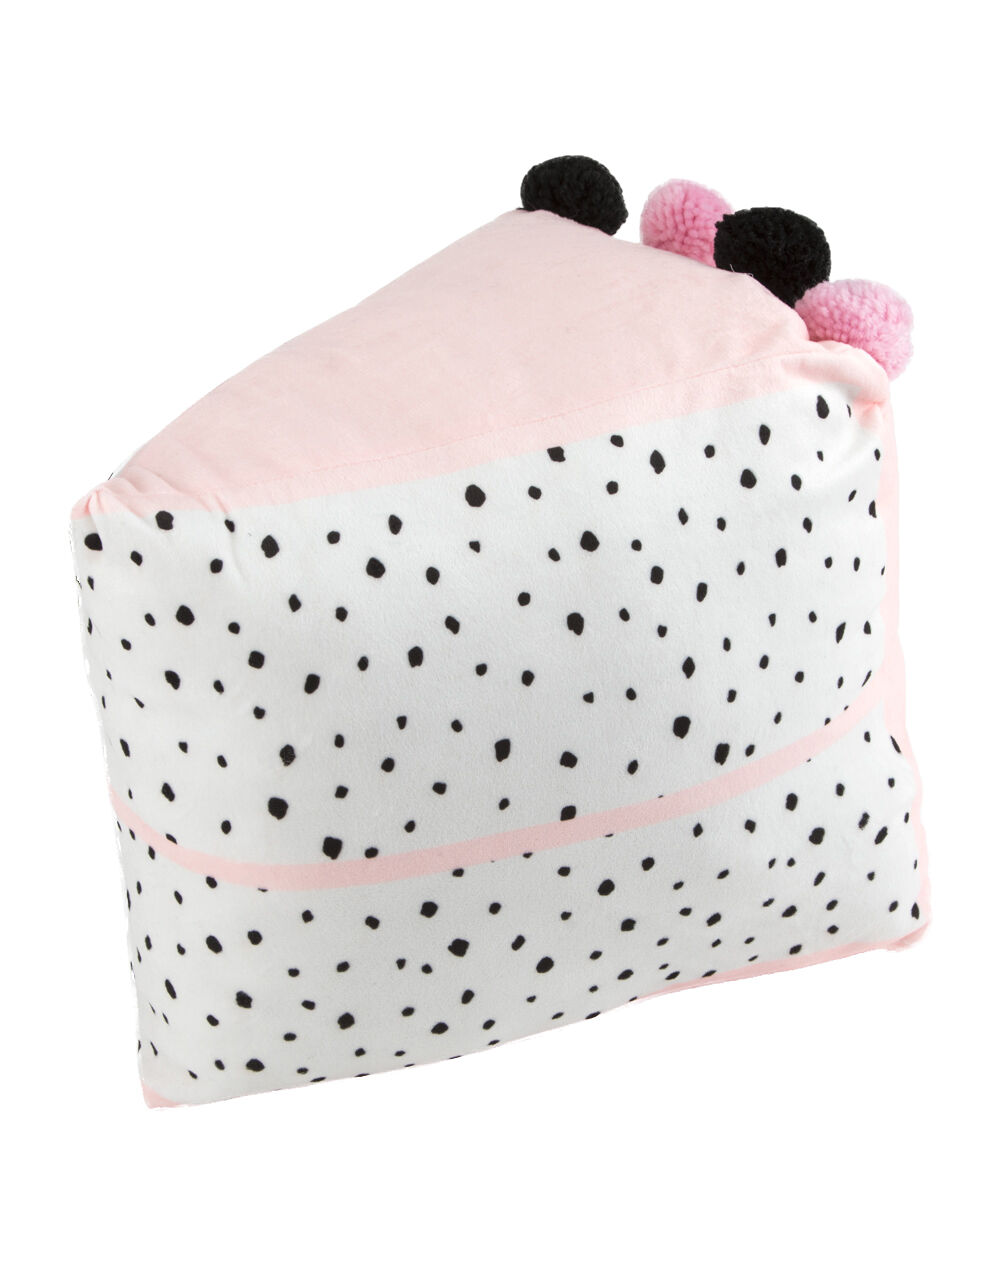 Image of ANKIT CAKE PILLOW